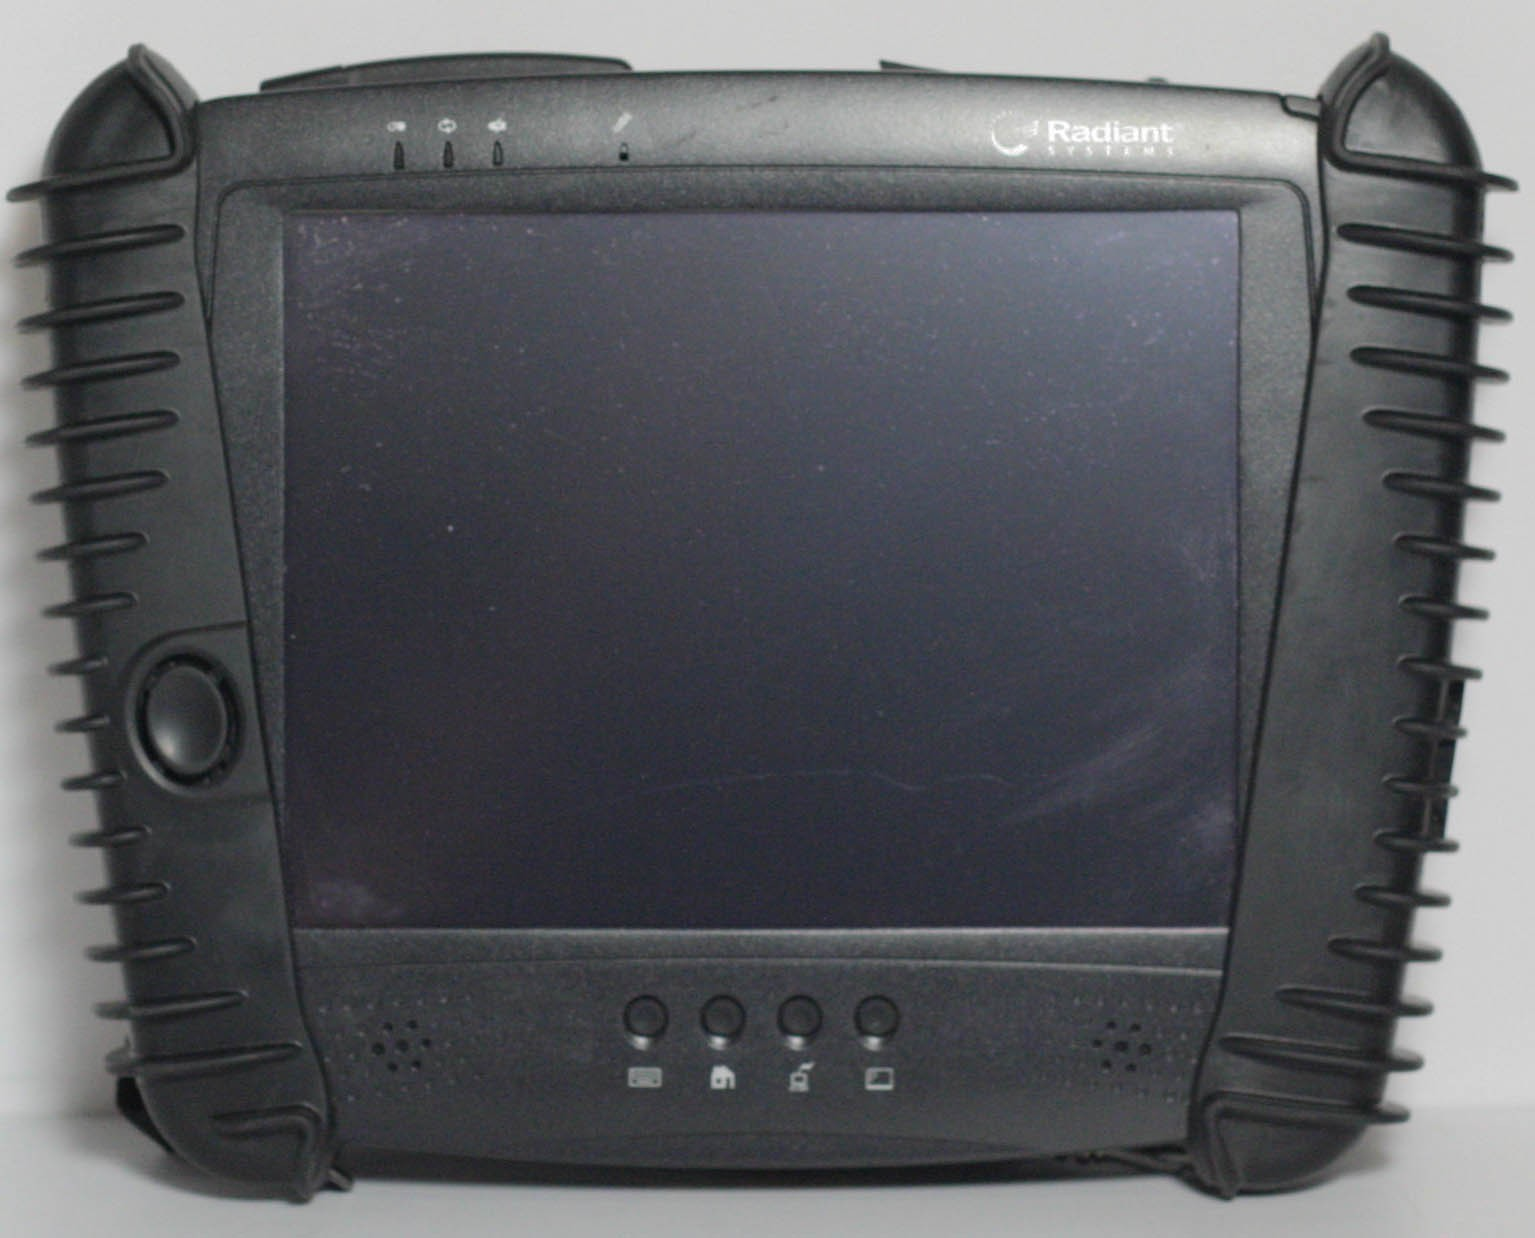 1000490-Radiant Systems DT368 POS Tablet -image